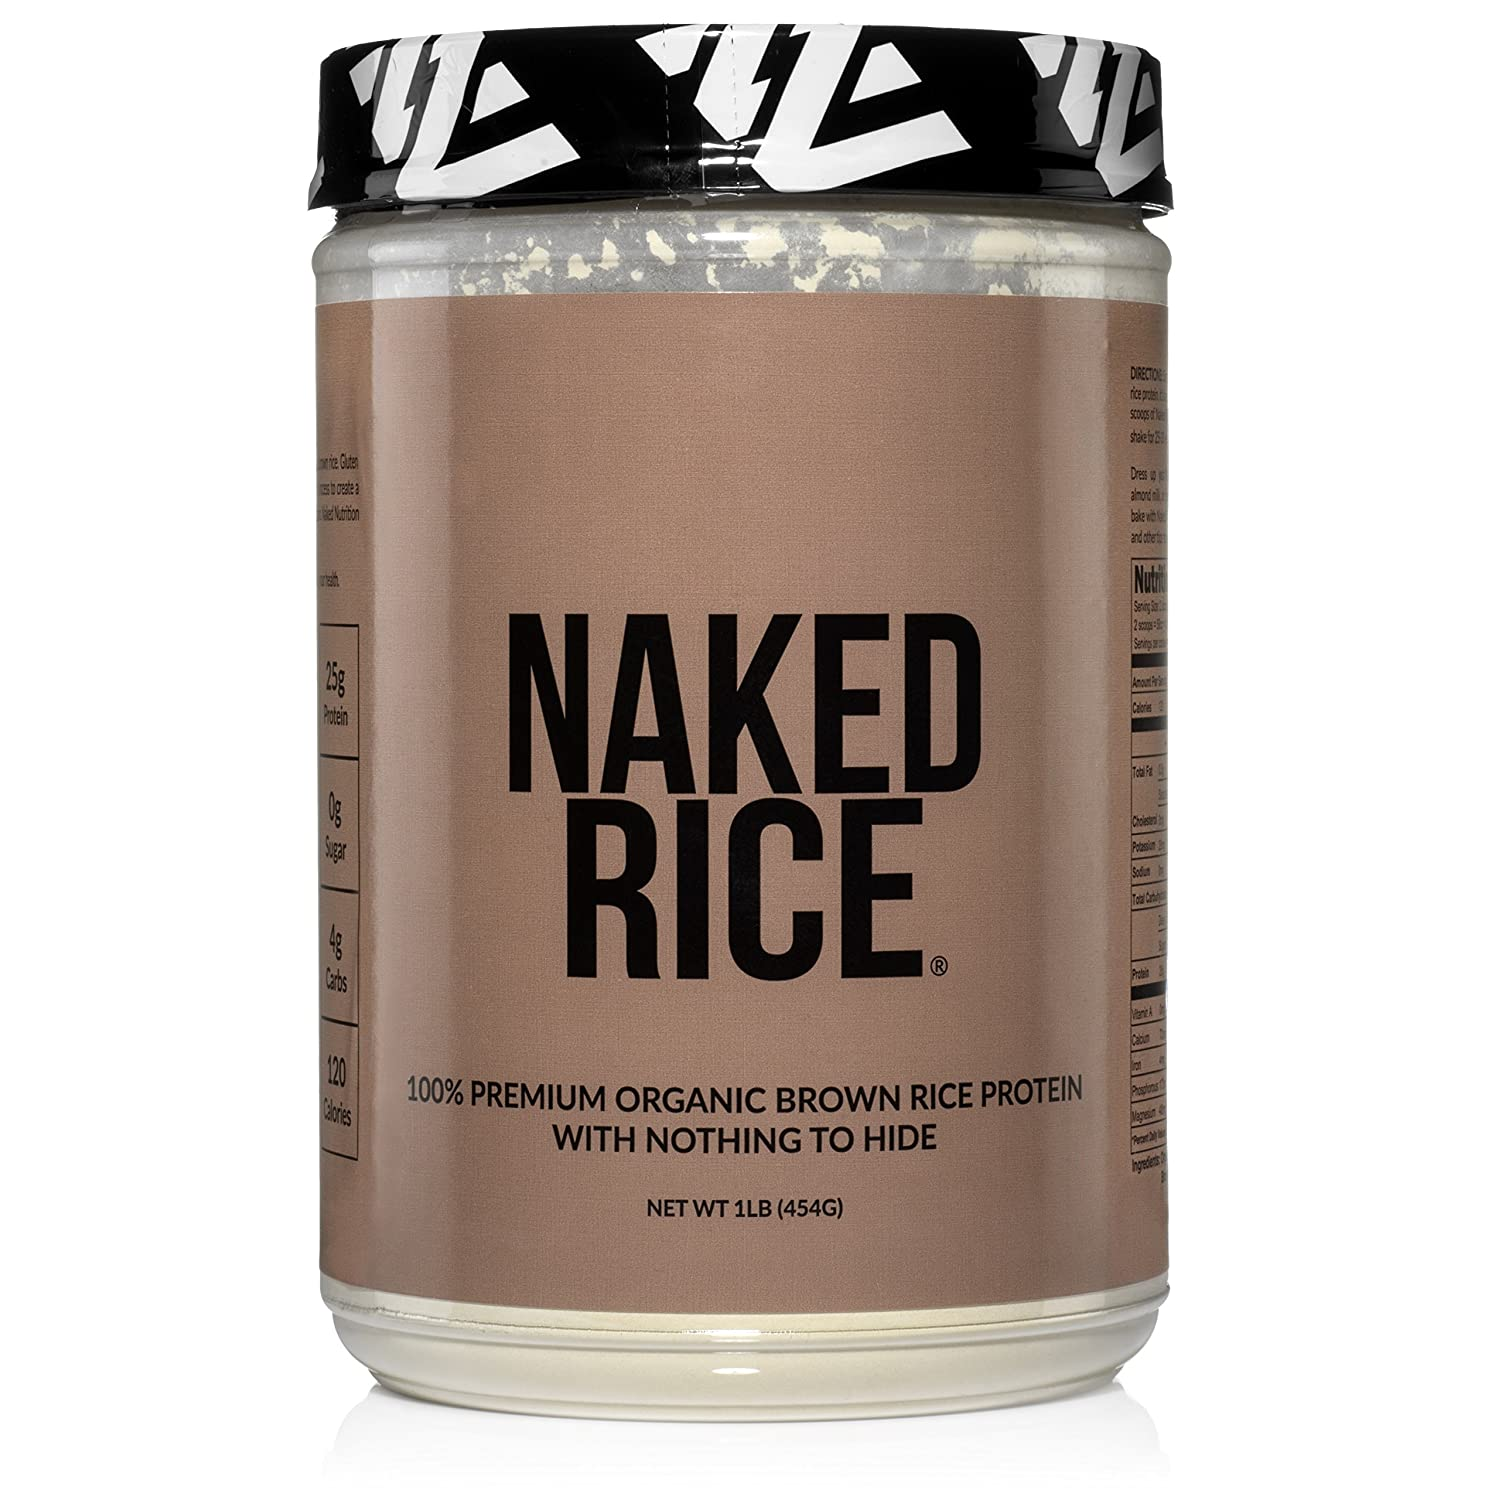 Amazon.com: NAKED RICE 1LB - Organic Brown Rice Protein Powder ...